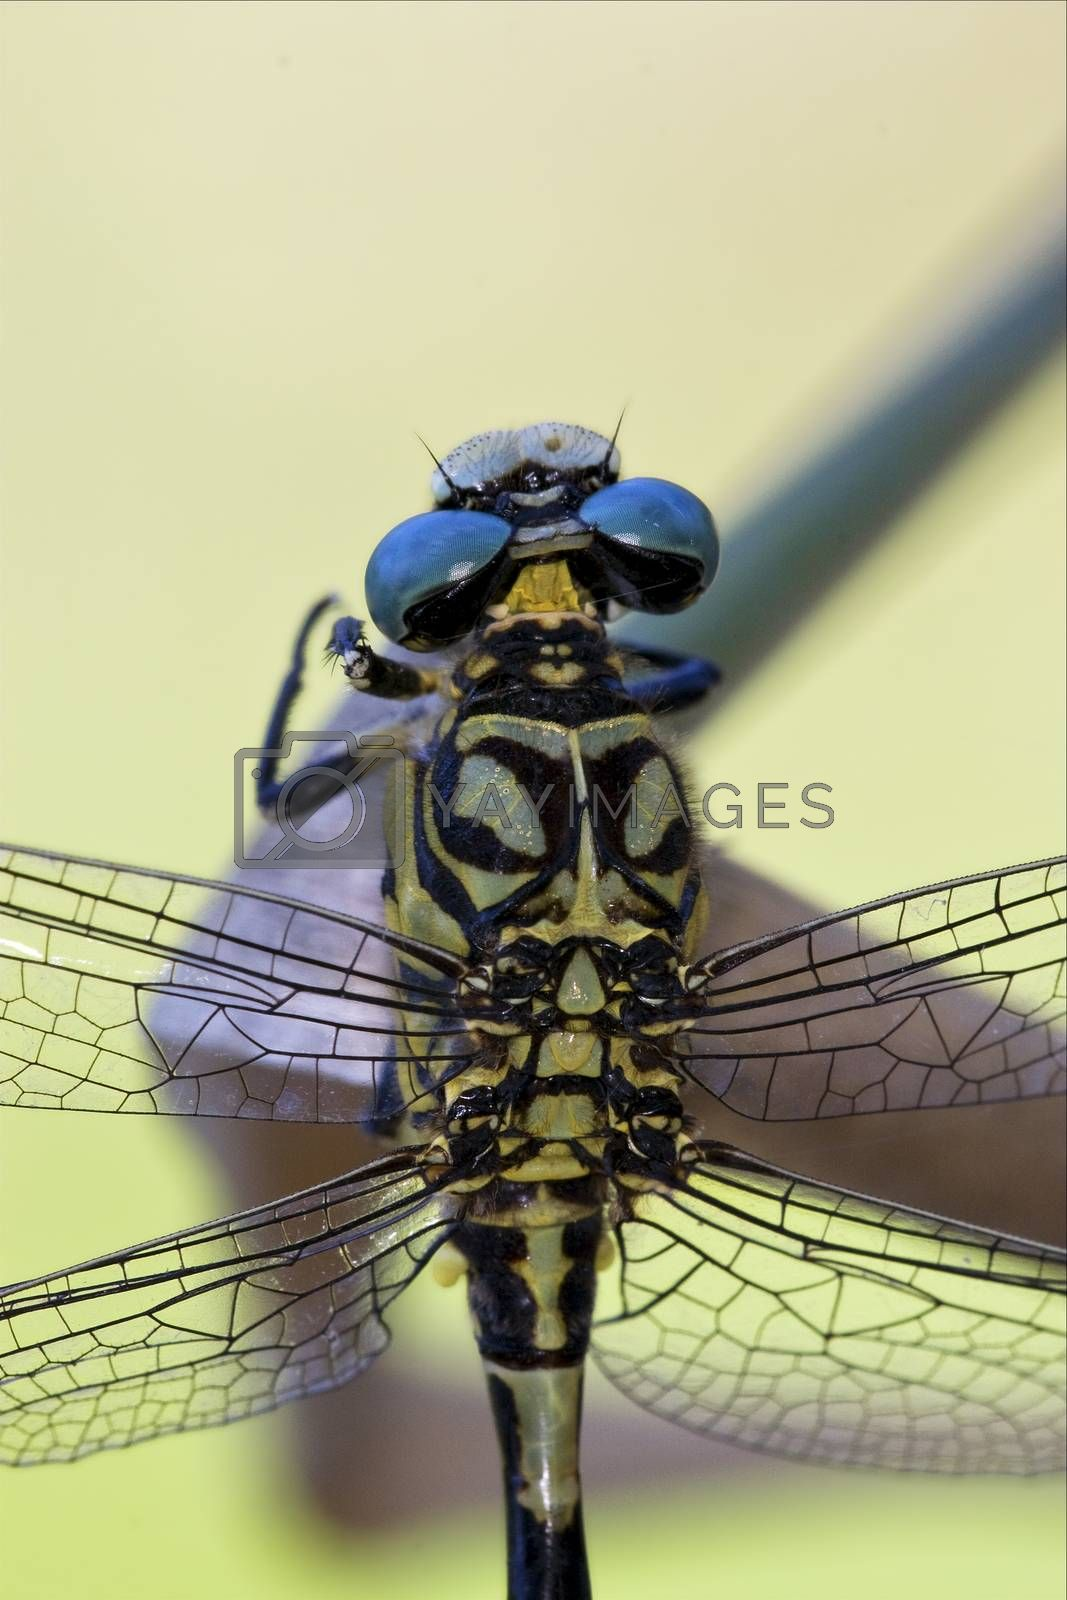 Royalty free image of back of wild black yellow dragonfly by lkpro